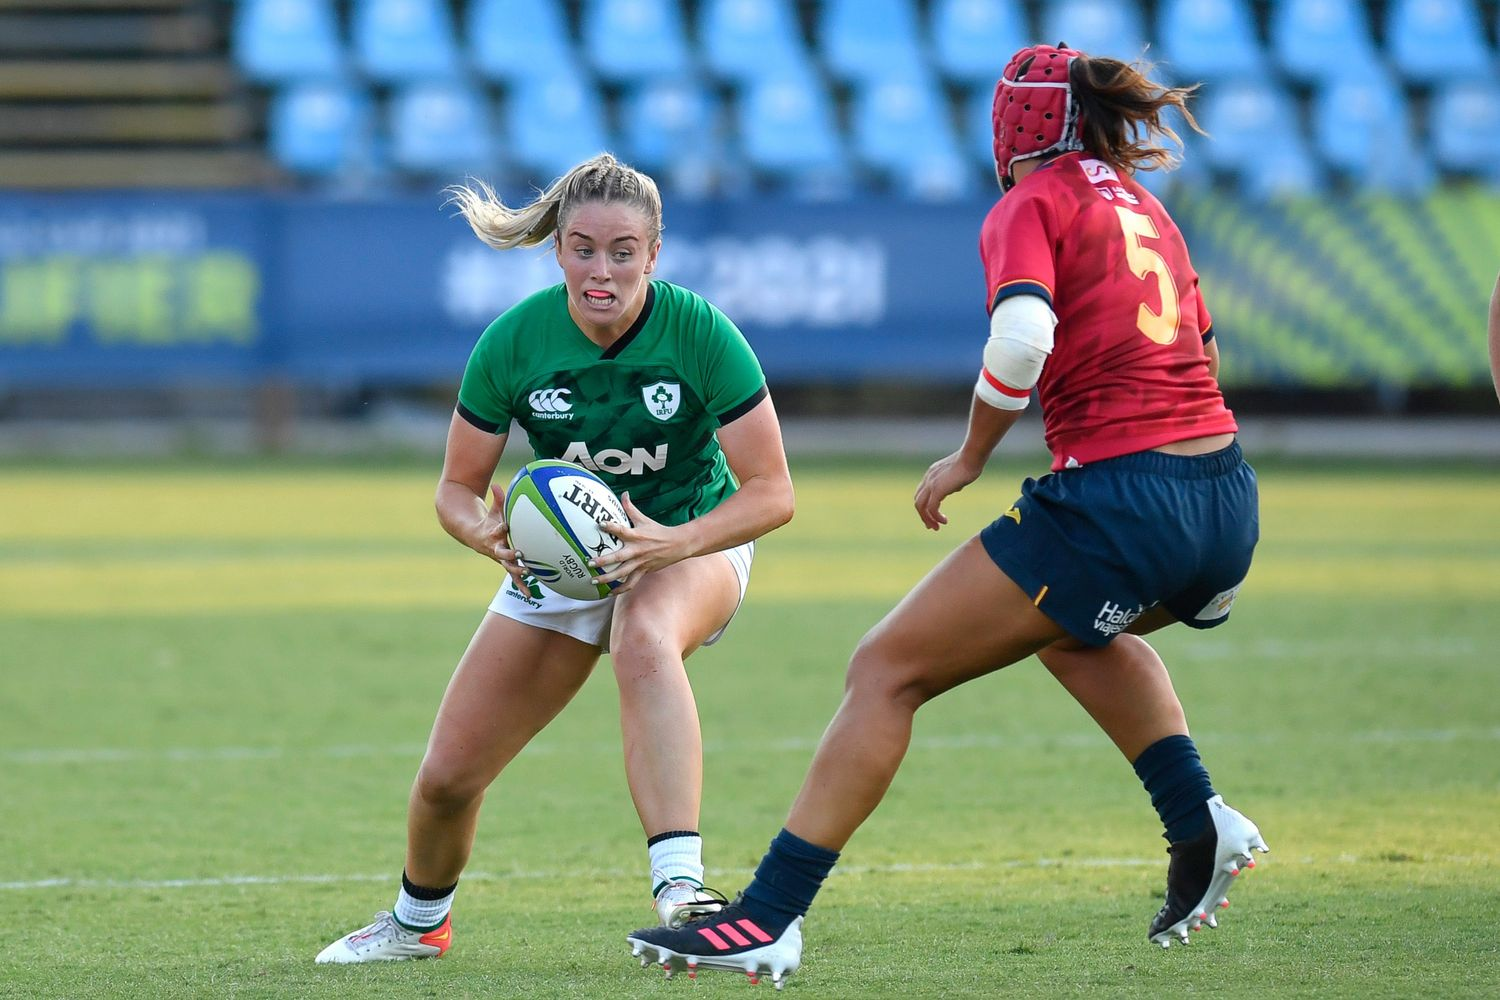 Rugby World Cup 2021 Europe Qualifier: Spain v Ireland